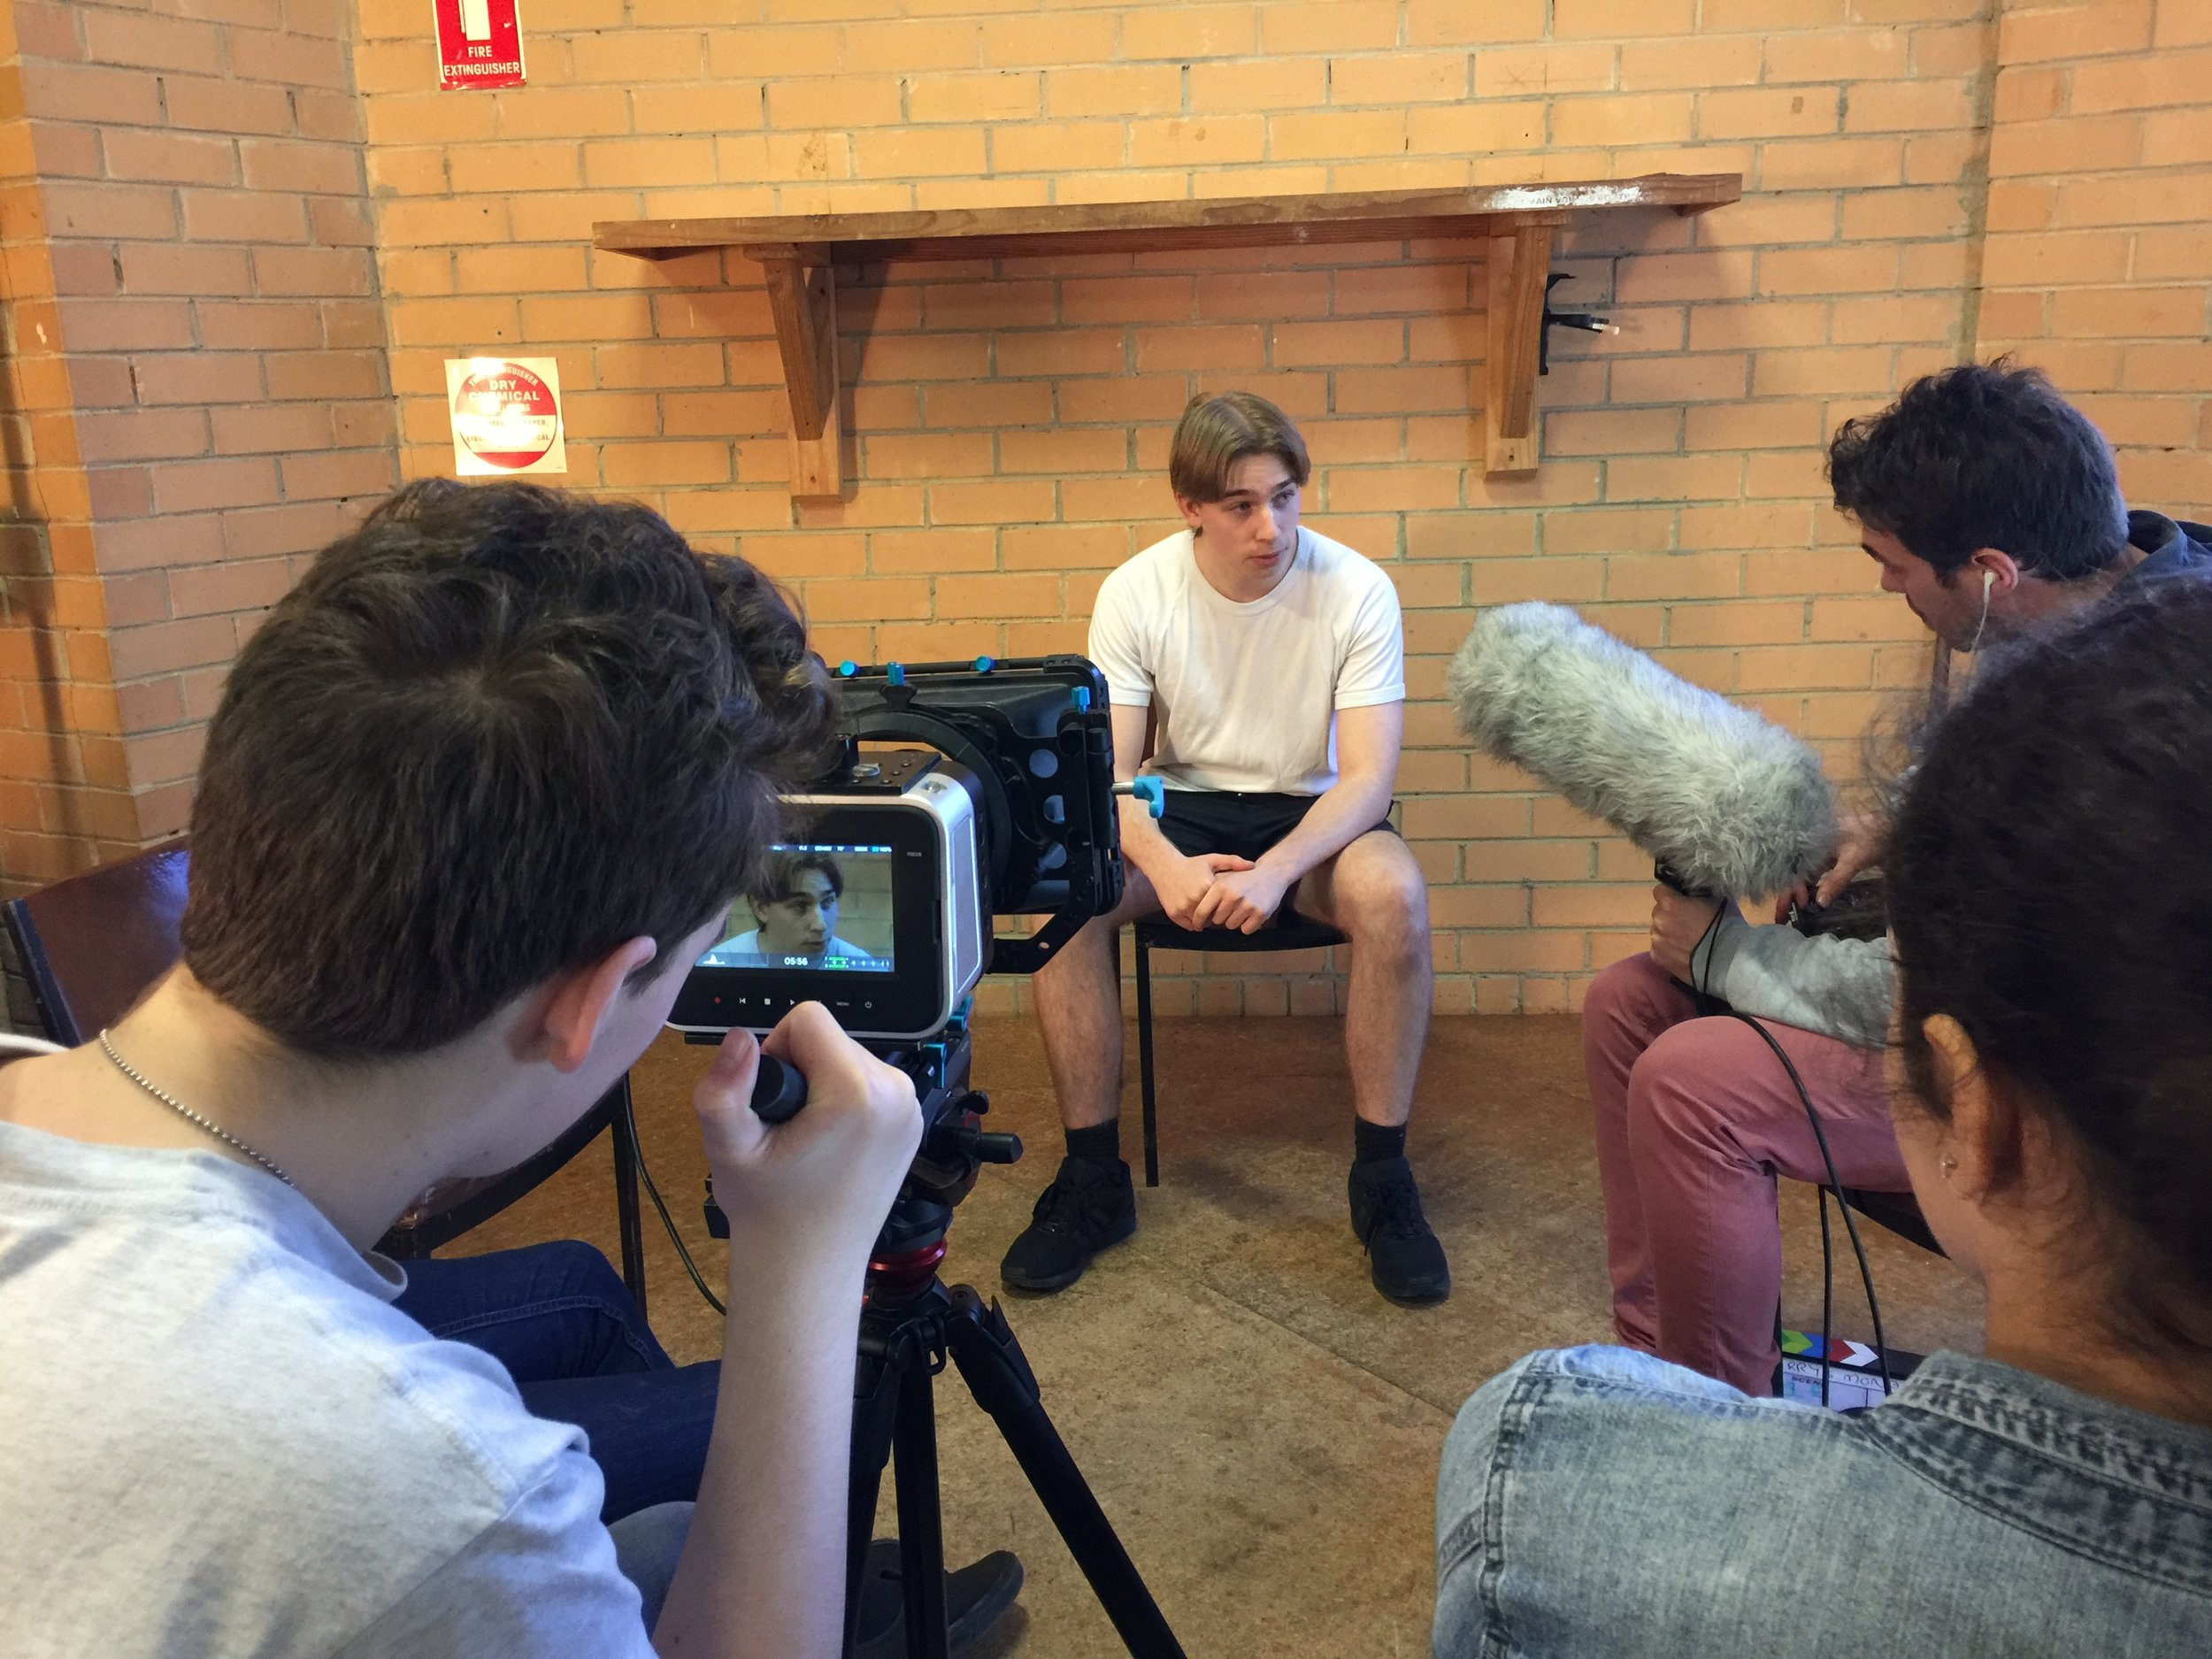 Harry Connelly: - Melbourne Teen Actors is the highlight of my week. All students and staff are incredibly welcoming and push each other to learn every lesson. After looking for an acting class that pushed me to be the most capable actor I could be I was delighted upon discovering this class. Highly recommend.